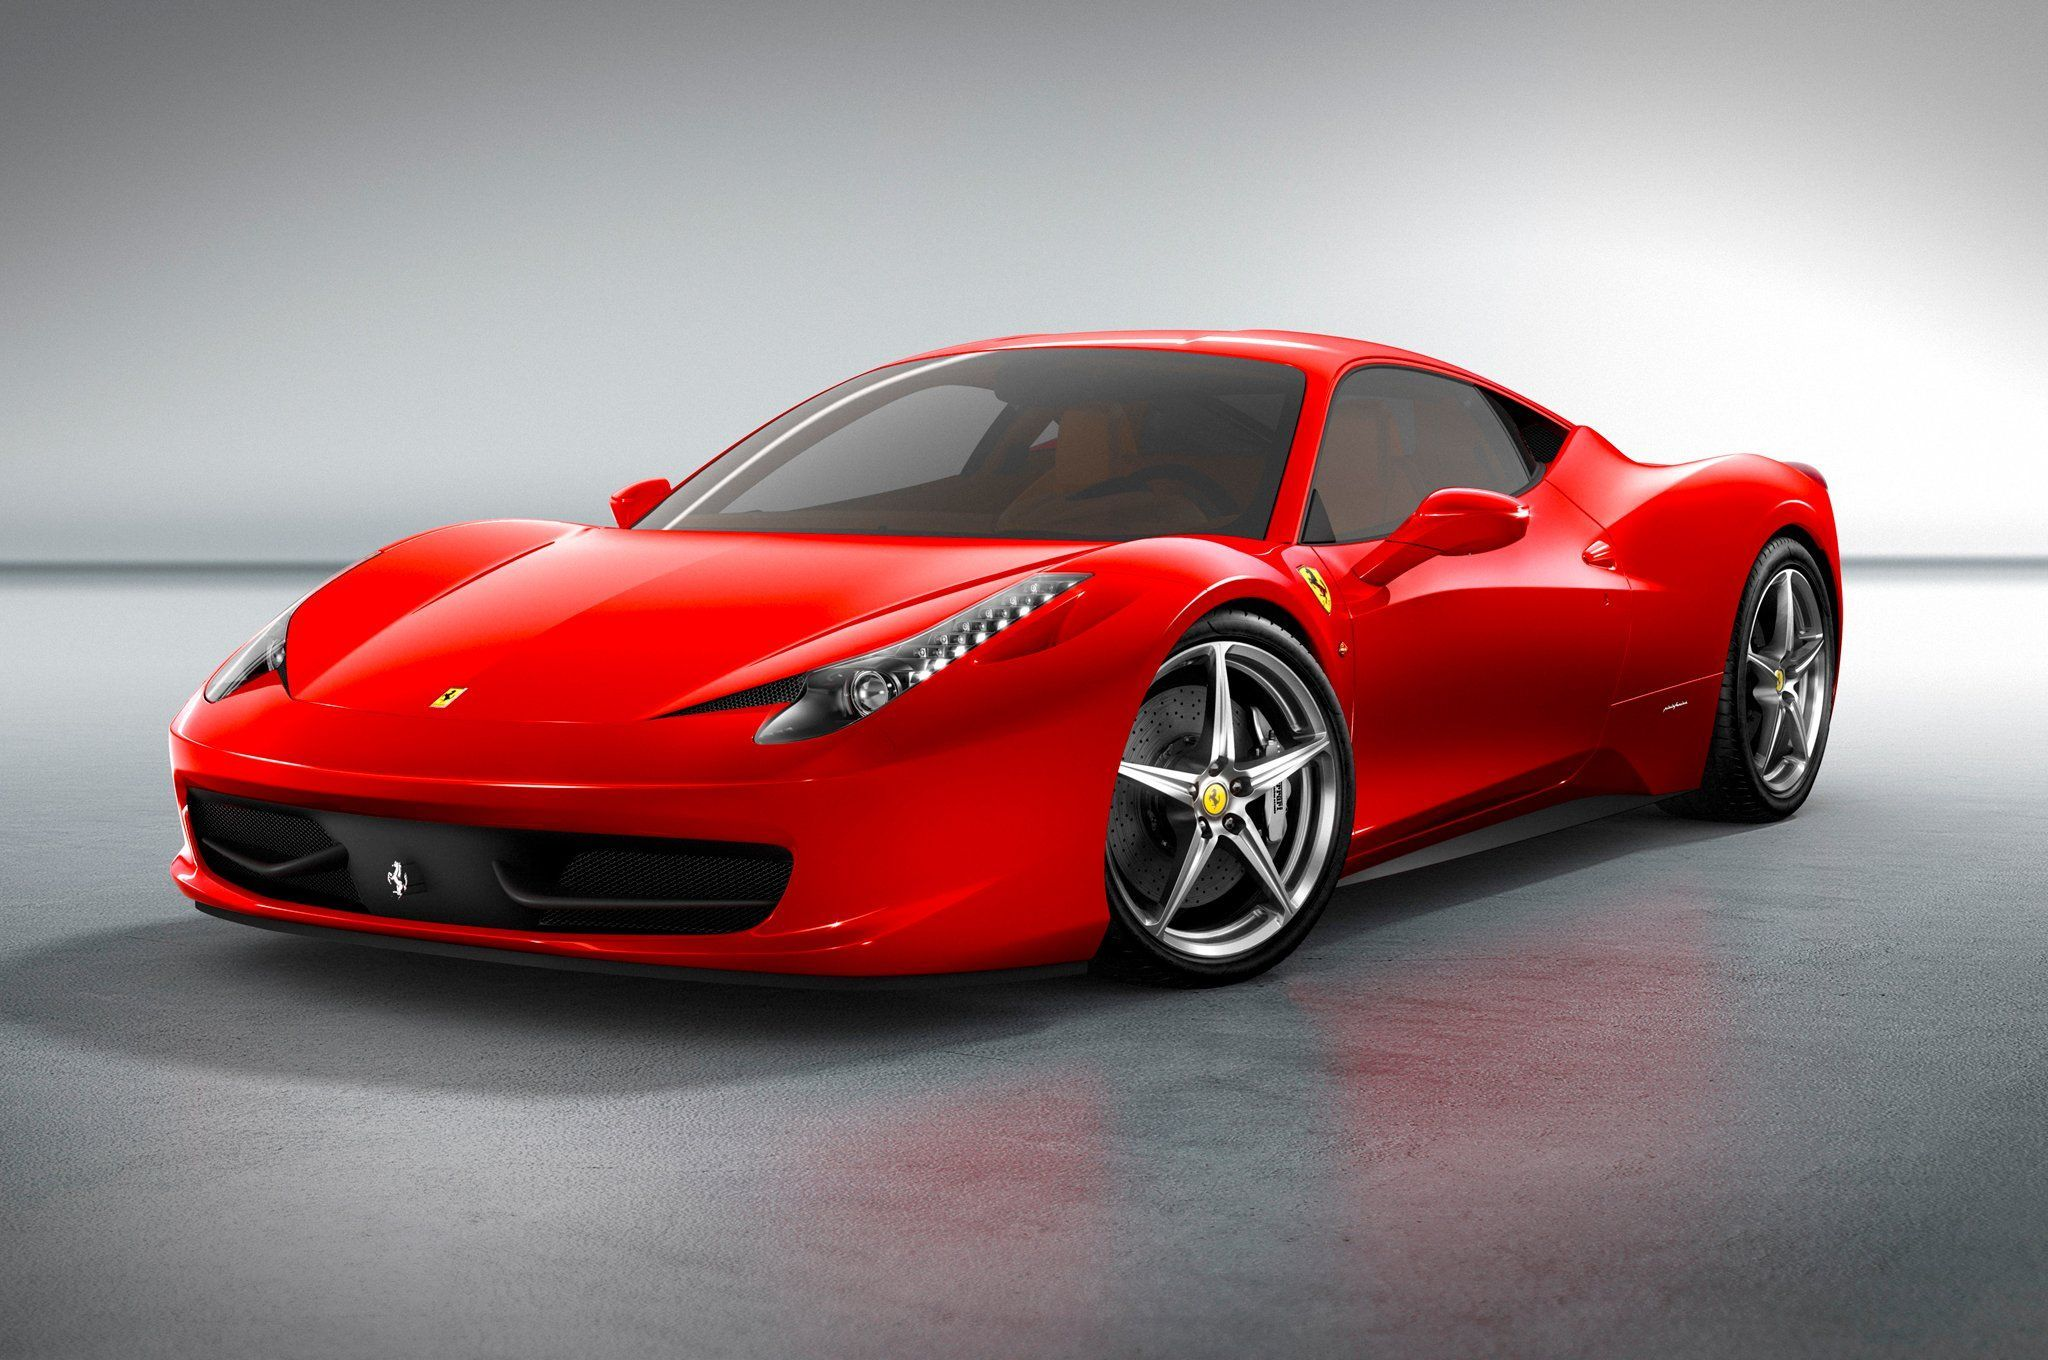 Ferrari 458 Ferrari sports cars Pinterest